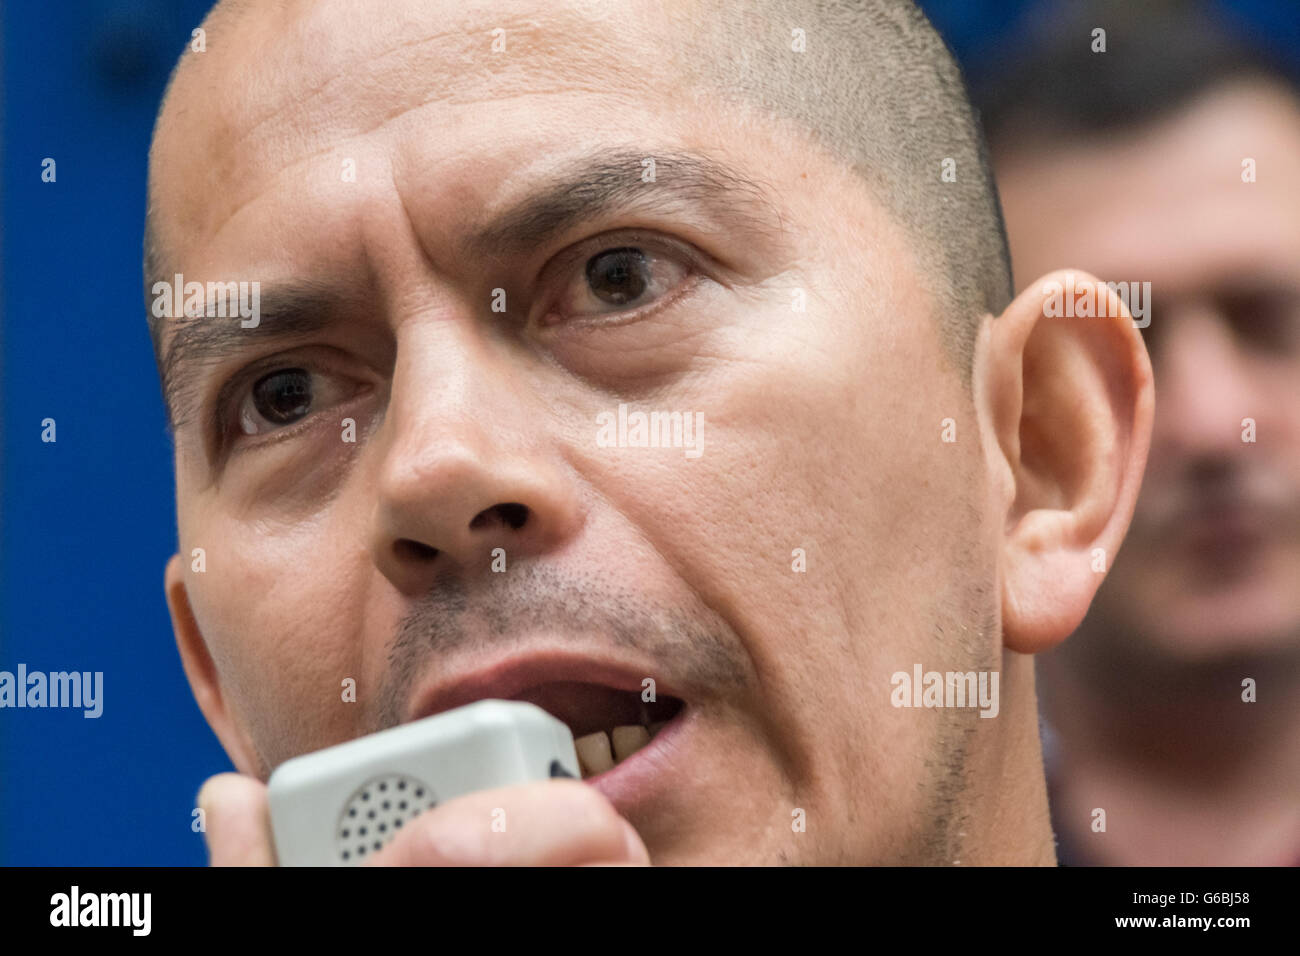 London, UK. June 29th, 2016. Striking cleaner Juan Carlos, a member of the United Voices of the World union employed Stock Photo